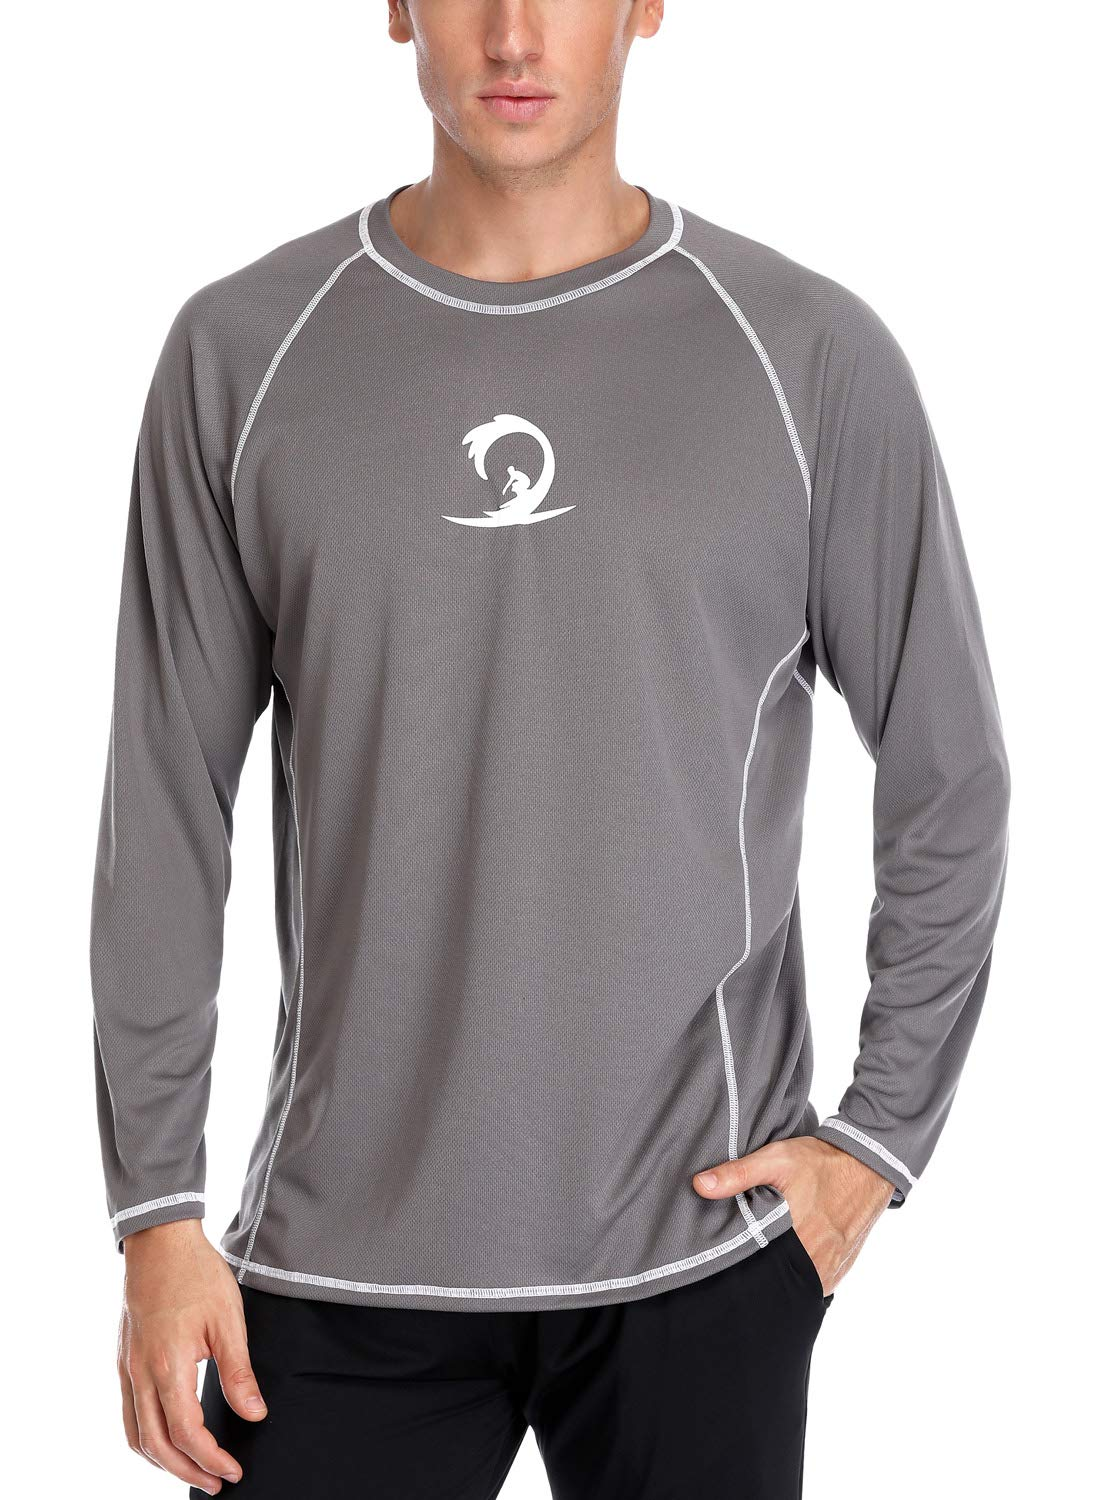 Sociala Men's UPF 50+ Rashguard Long Sleeve Workout T-Shirts L Gray by Sociala